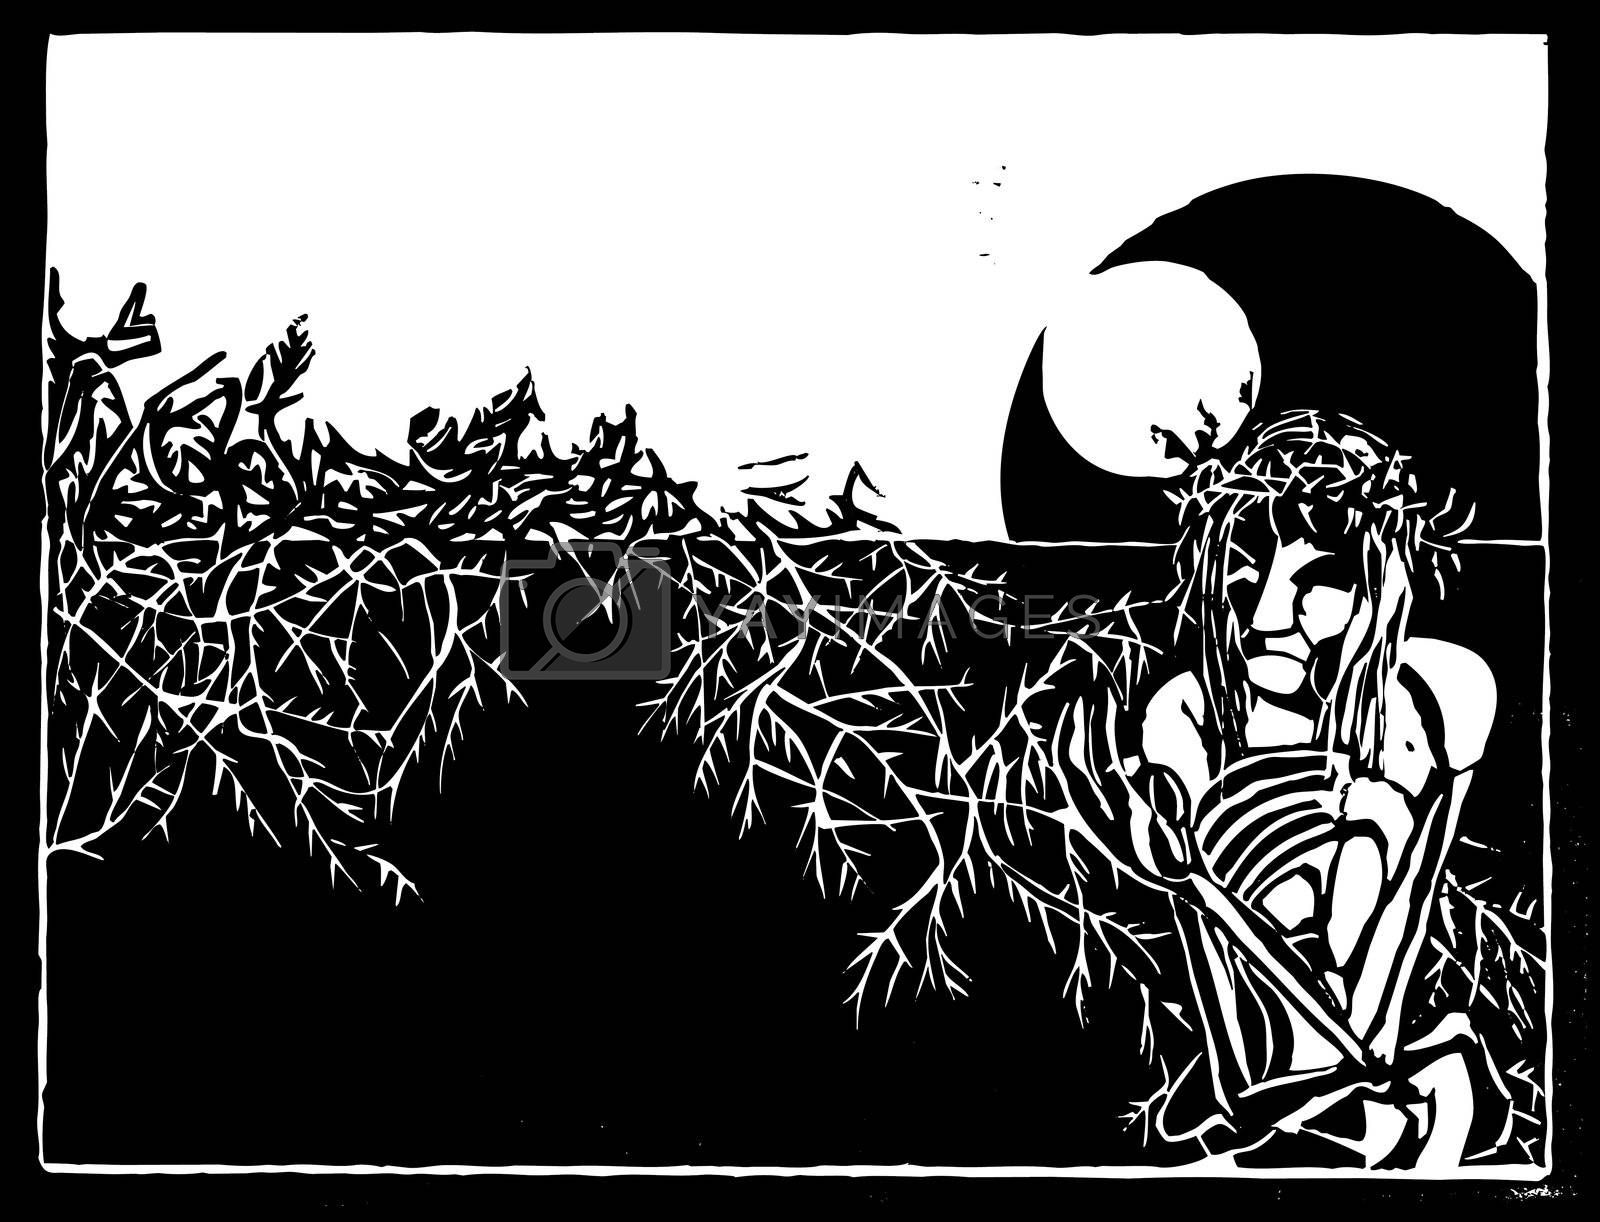 Woodcut stylization of Jesus Christ with crown of thorns.